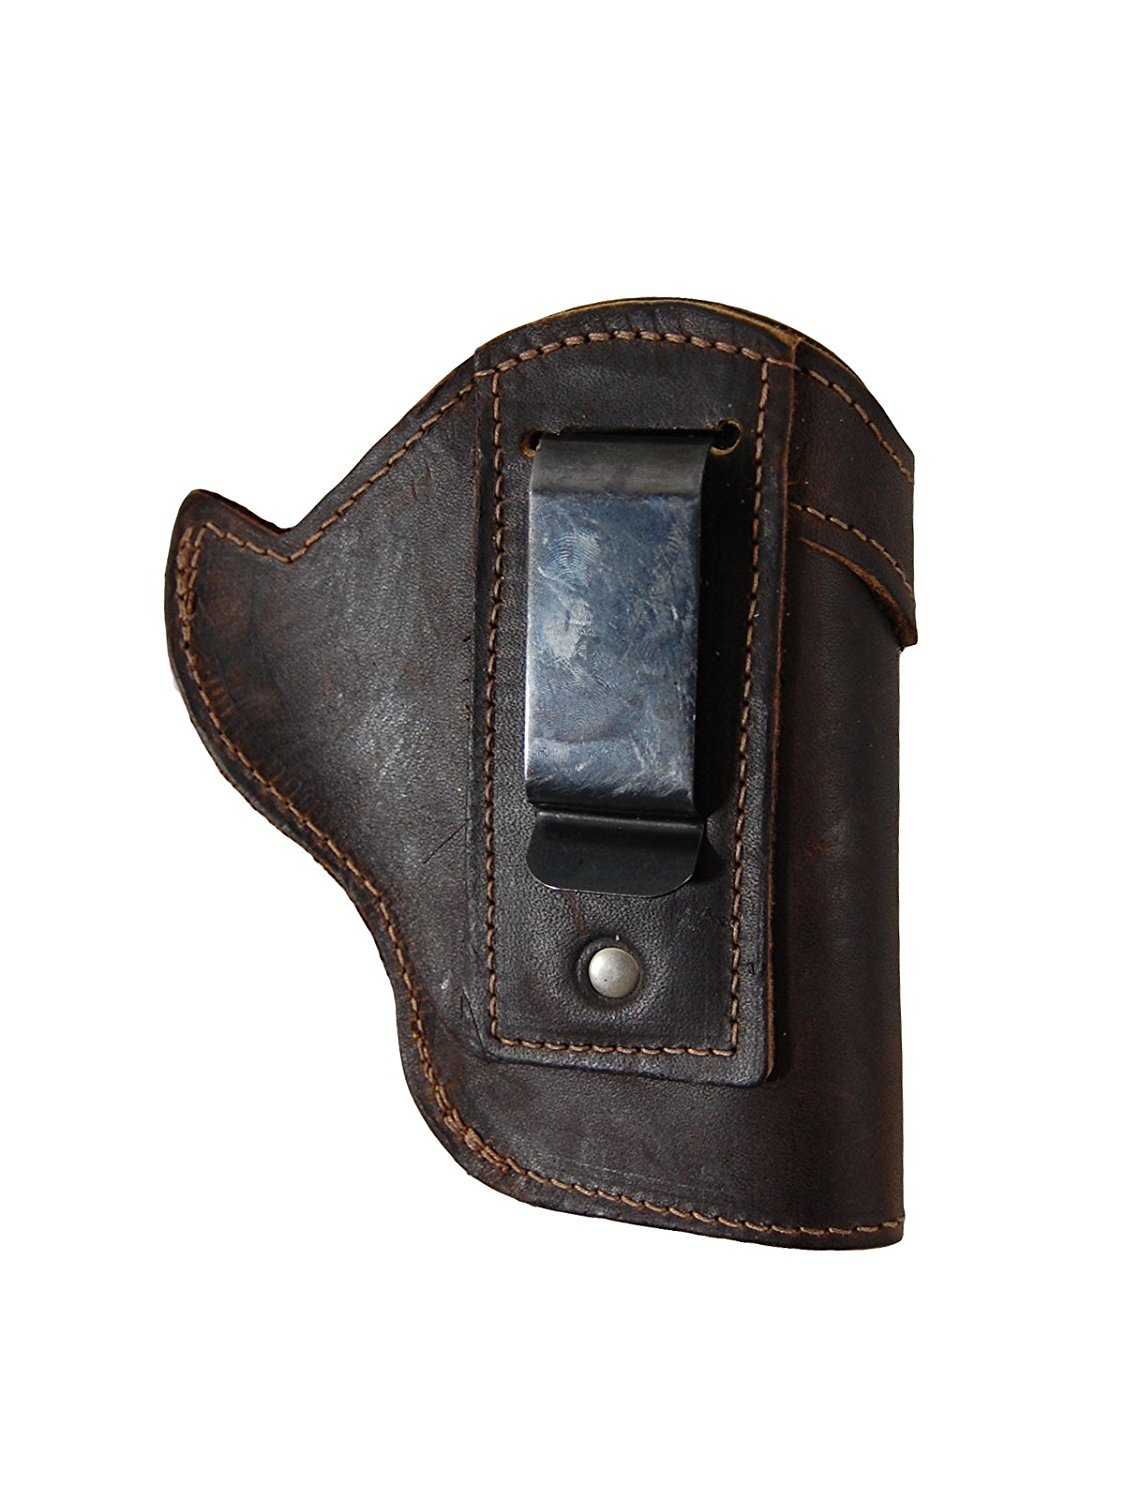 Buy Barsony Holsters and Belts Charter Arms Colt Ruger S&W Taurus